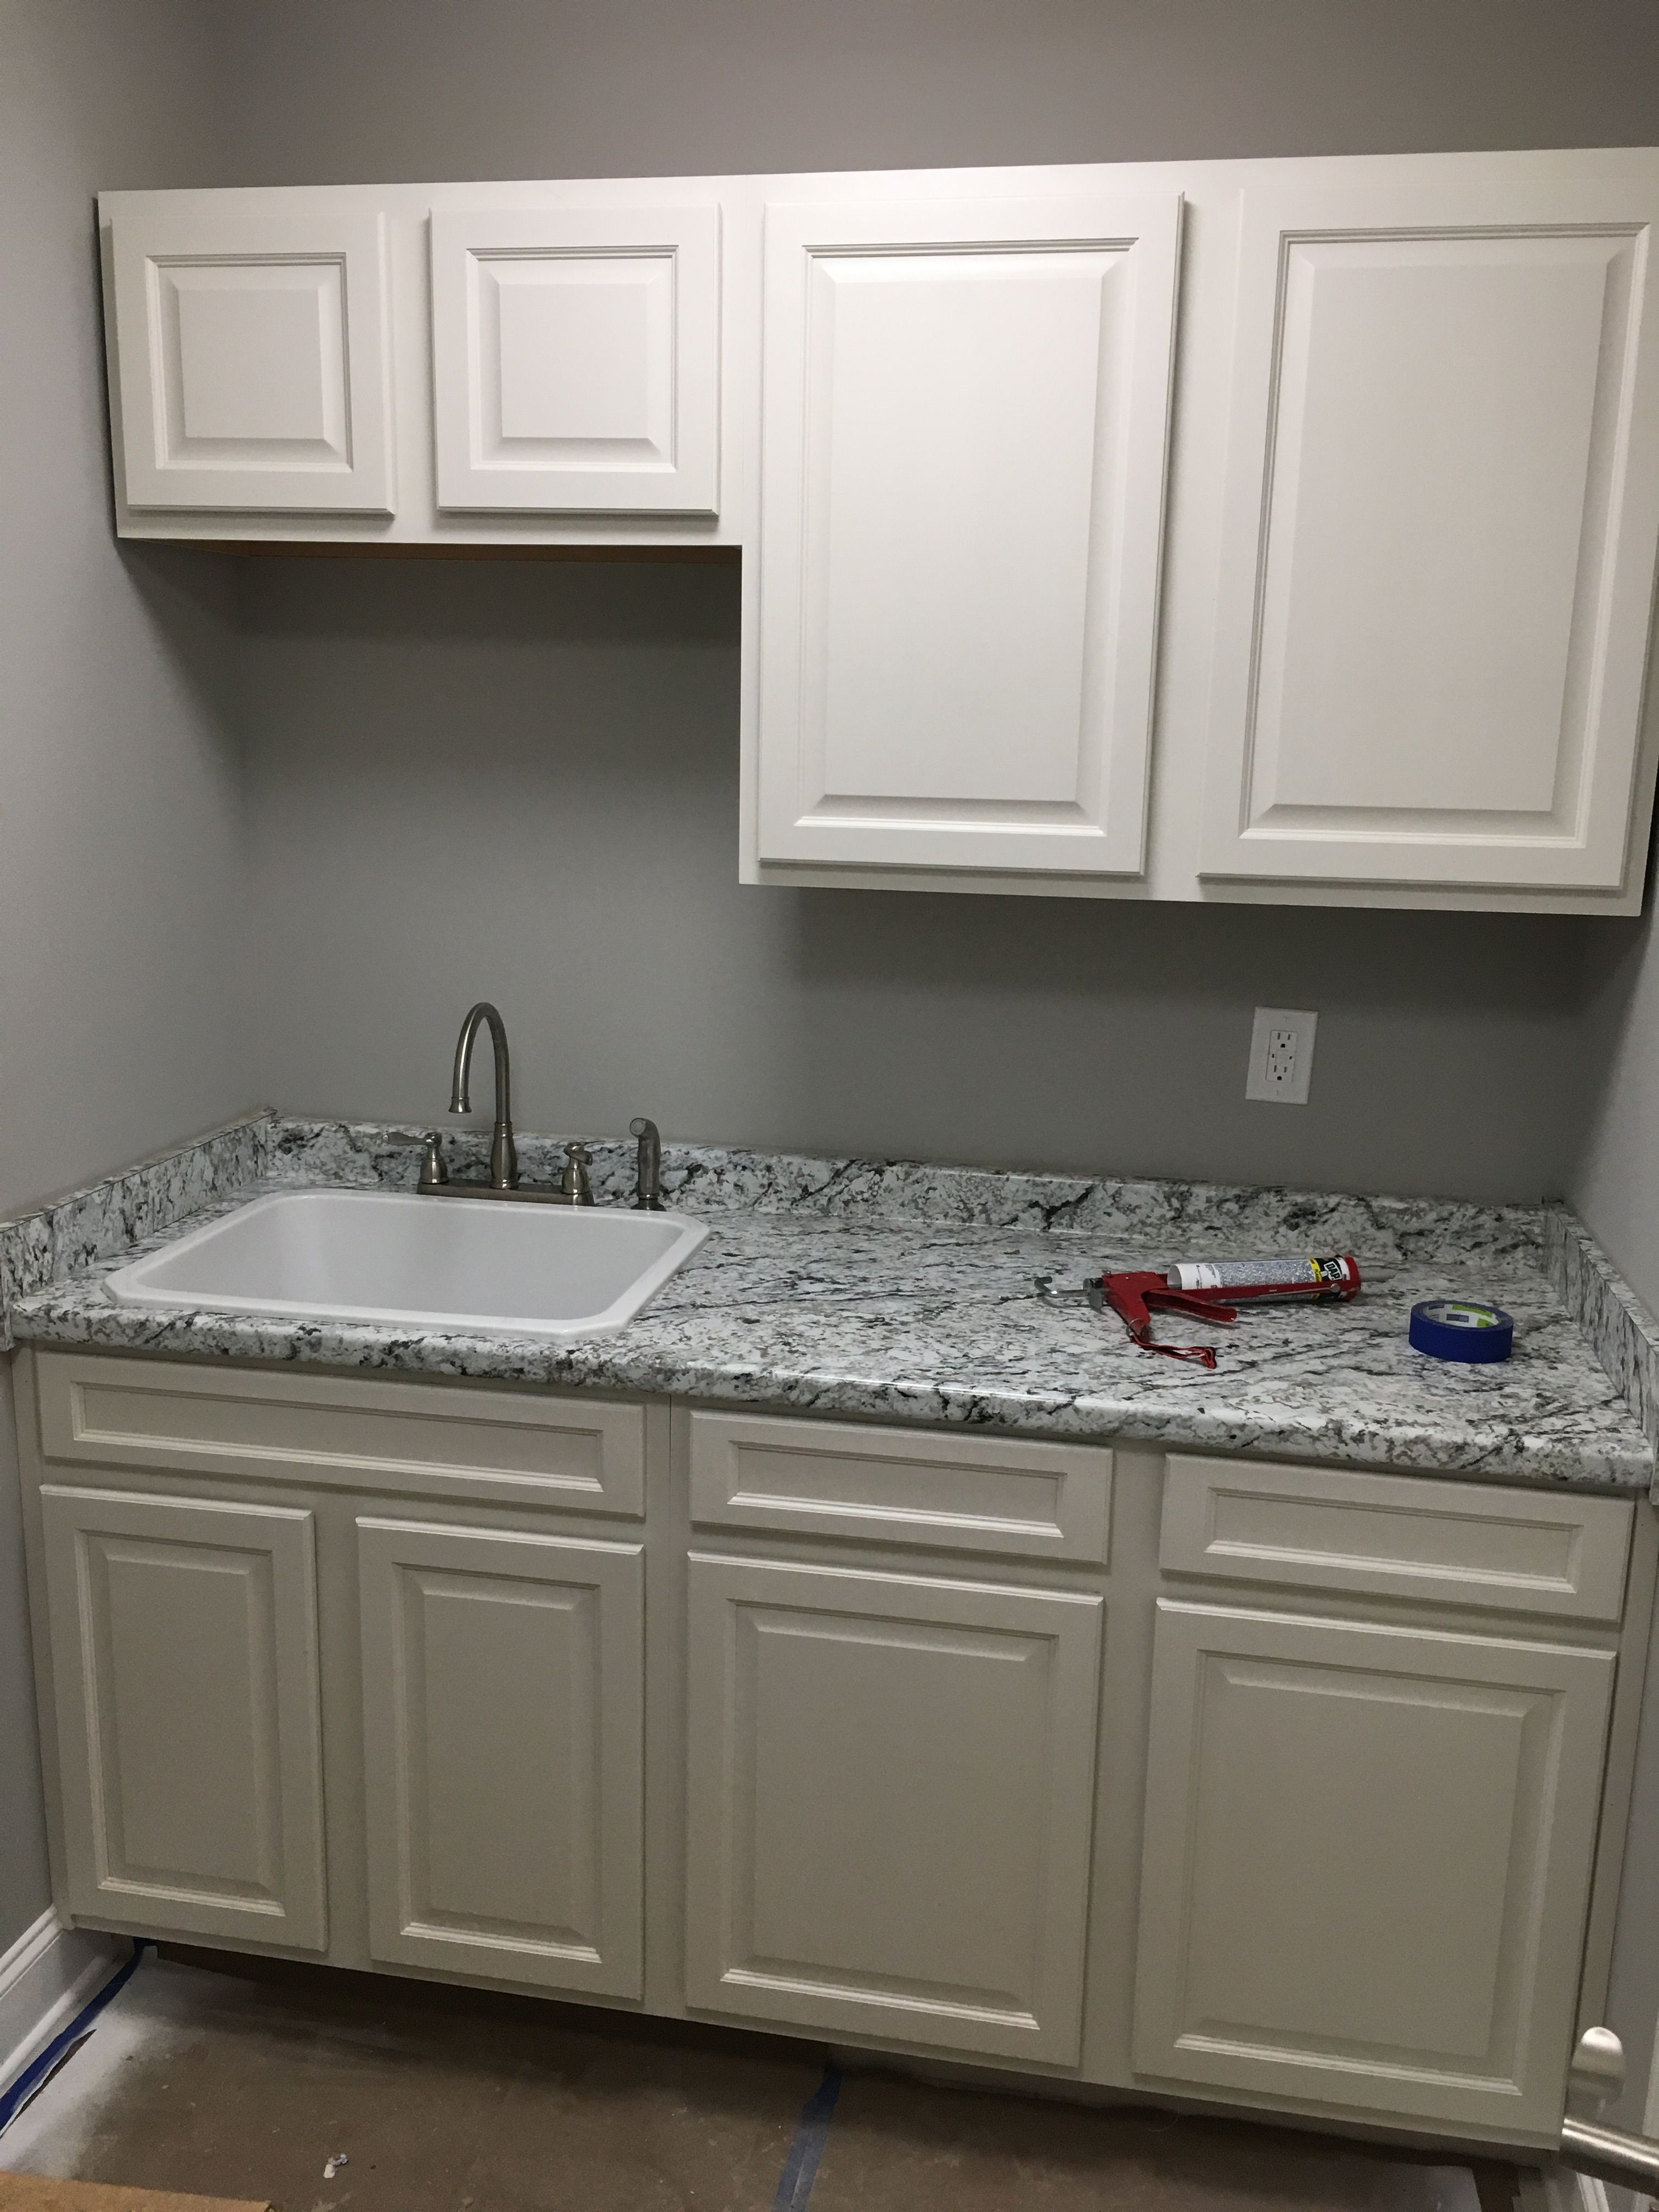 Formica In Laundry Room With Utility Sink Utility Sink